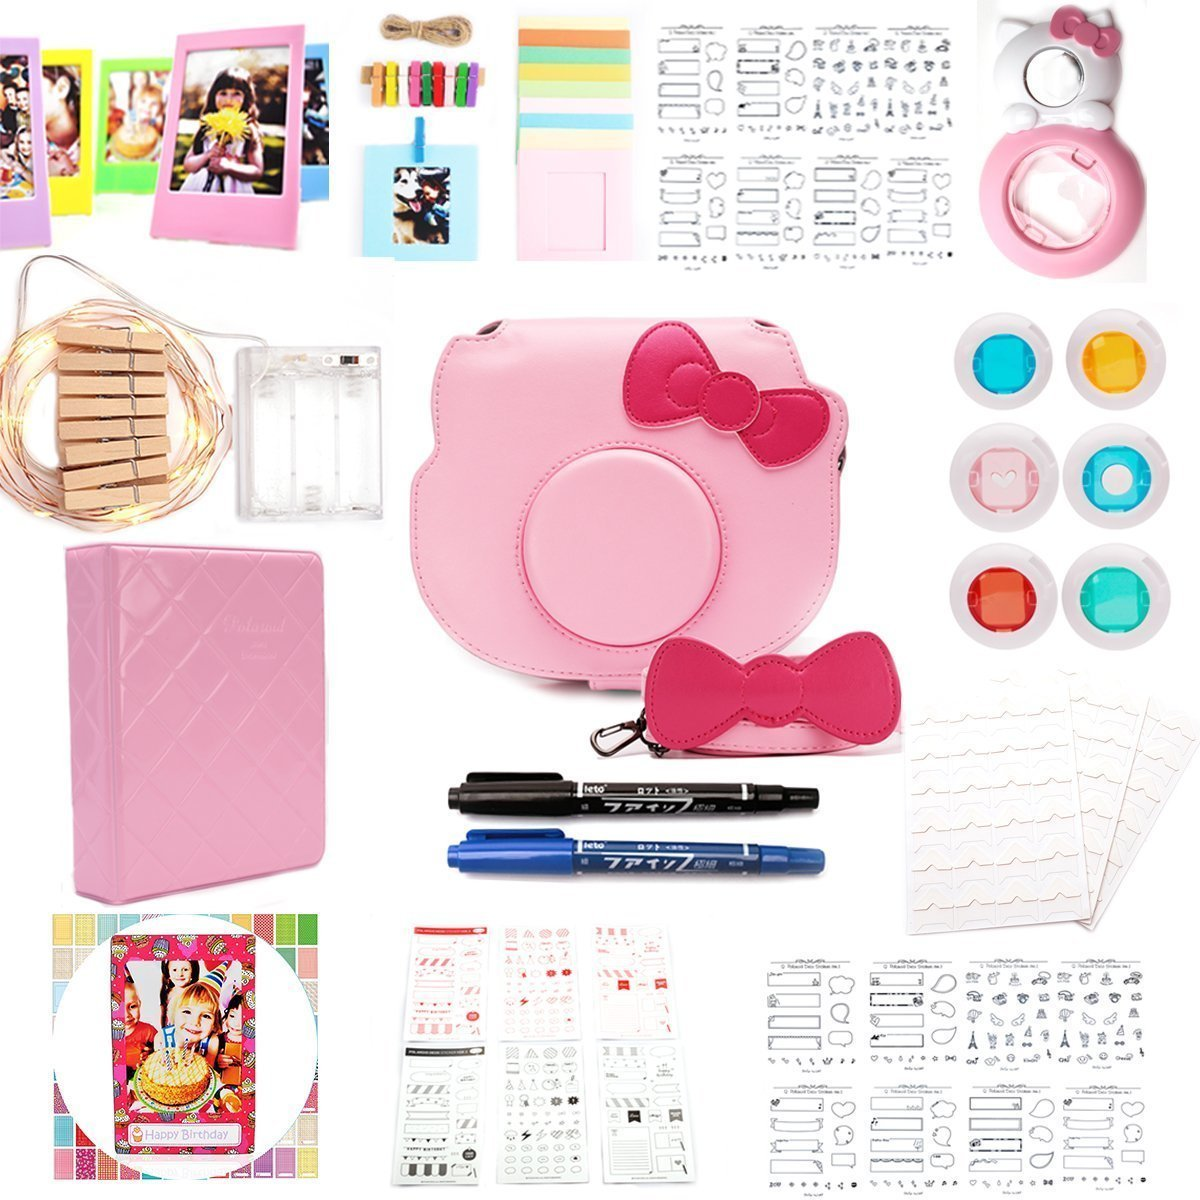 HelloHelio-Fujifilm Instax Mini Hellokitty Instant Film Camera 15-in-1[premium Pack] Accessories Bundles -Pink HK-15PINK-1